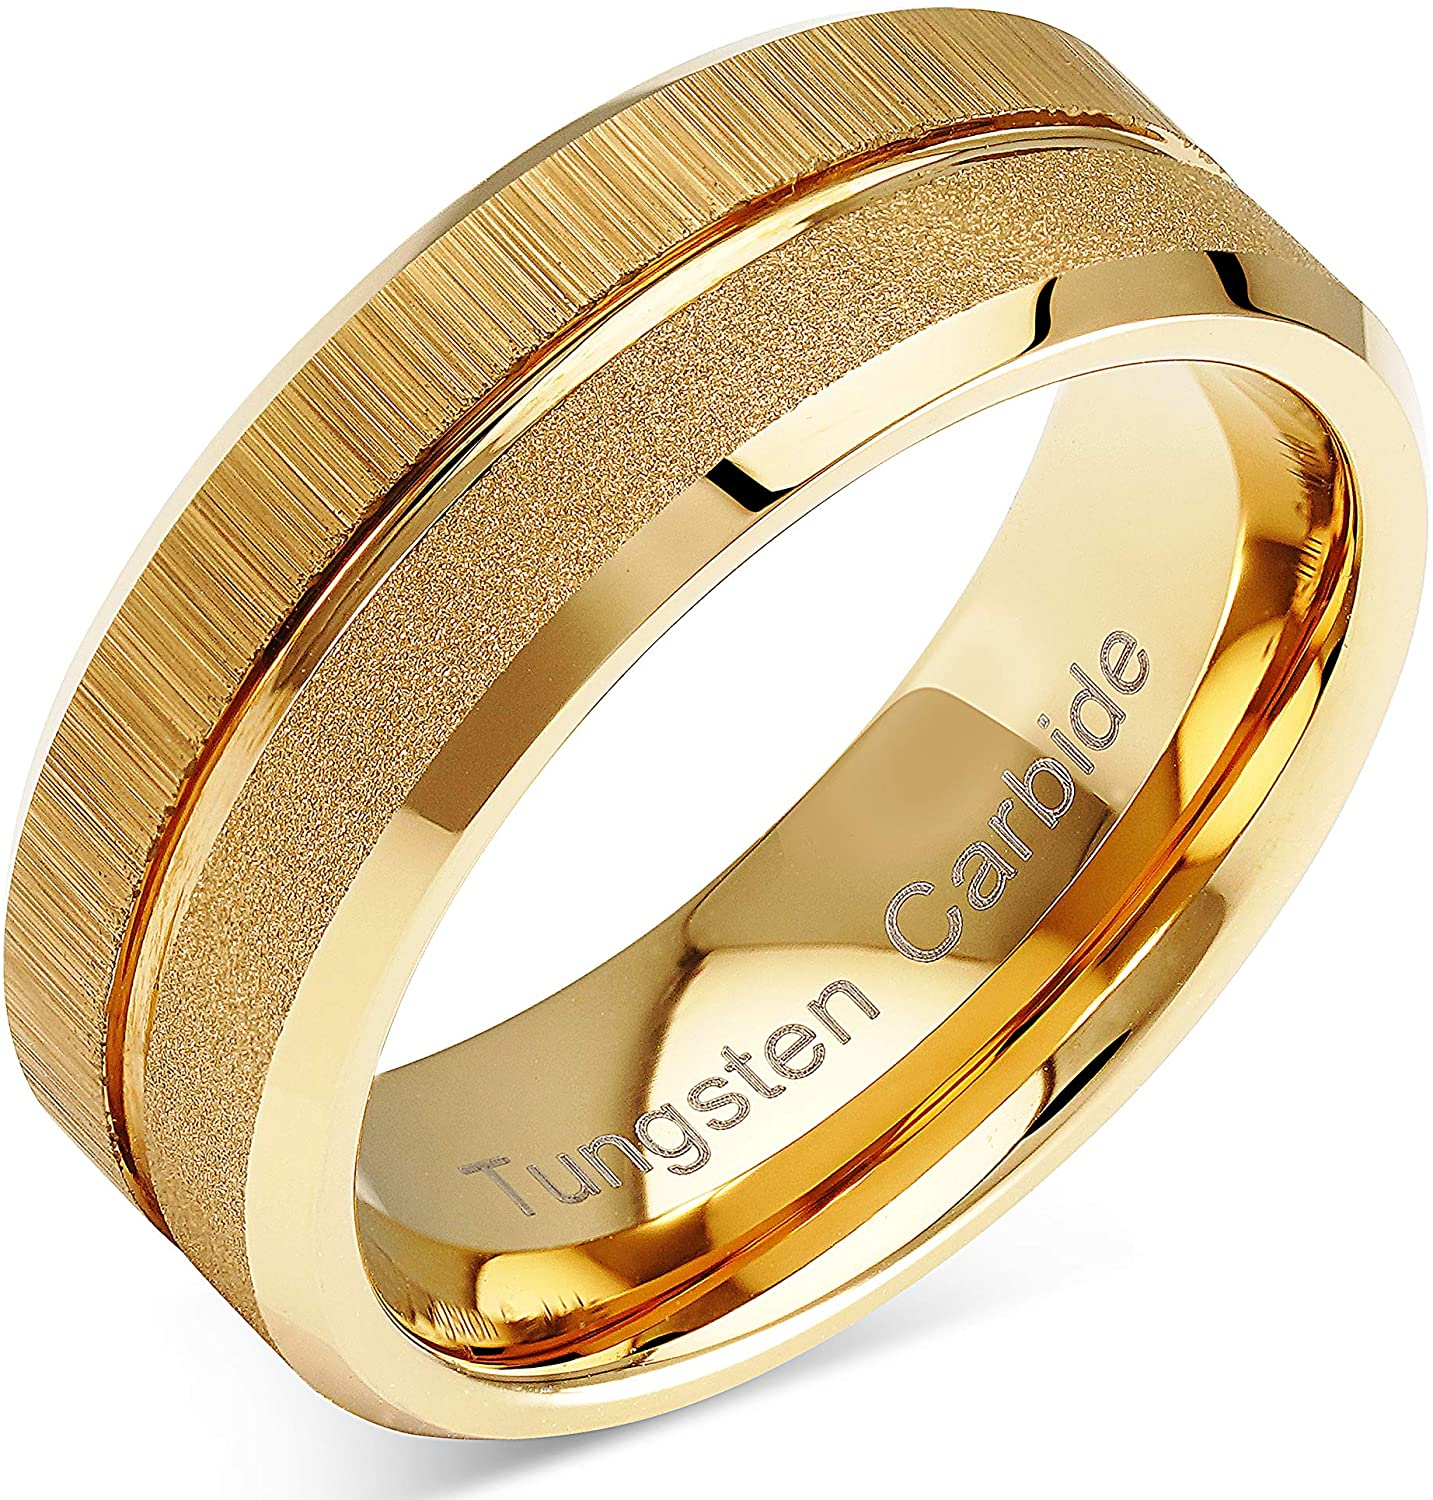 100S JEWELRY Tungsten Rings For Men Wedding Bands Gold Sandblast Brushed Grooved Size 6-16